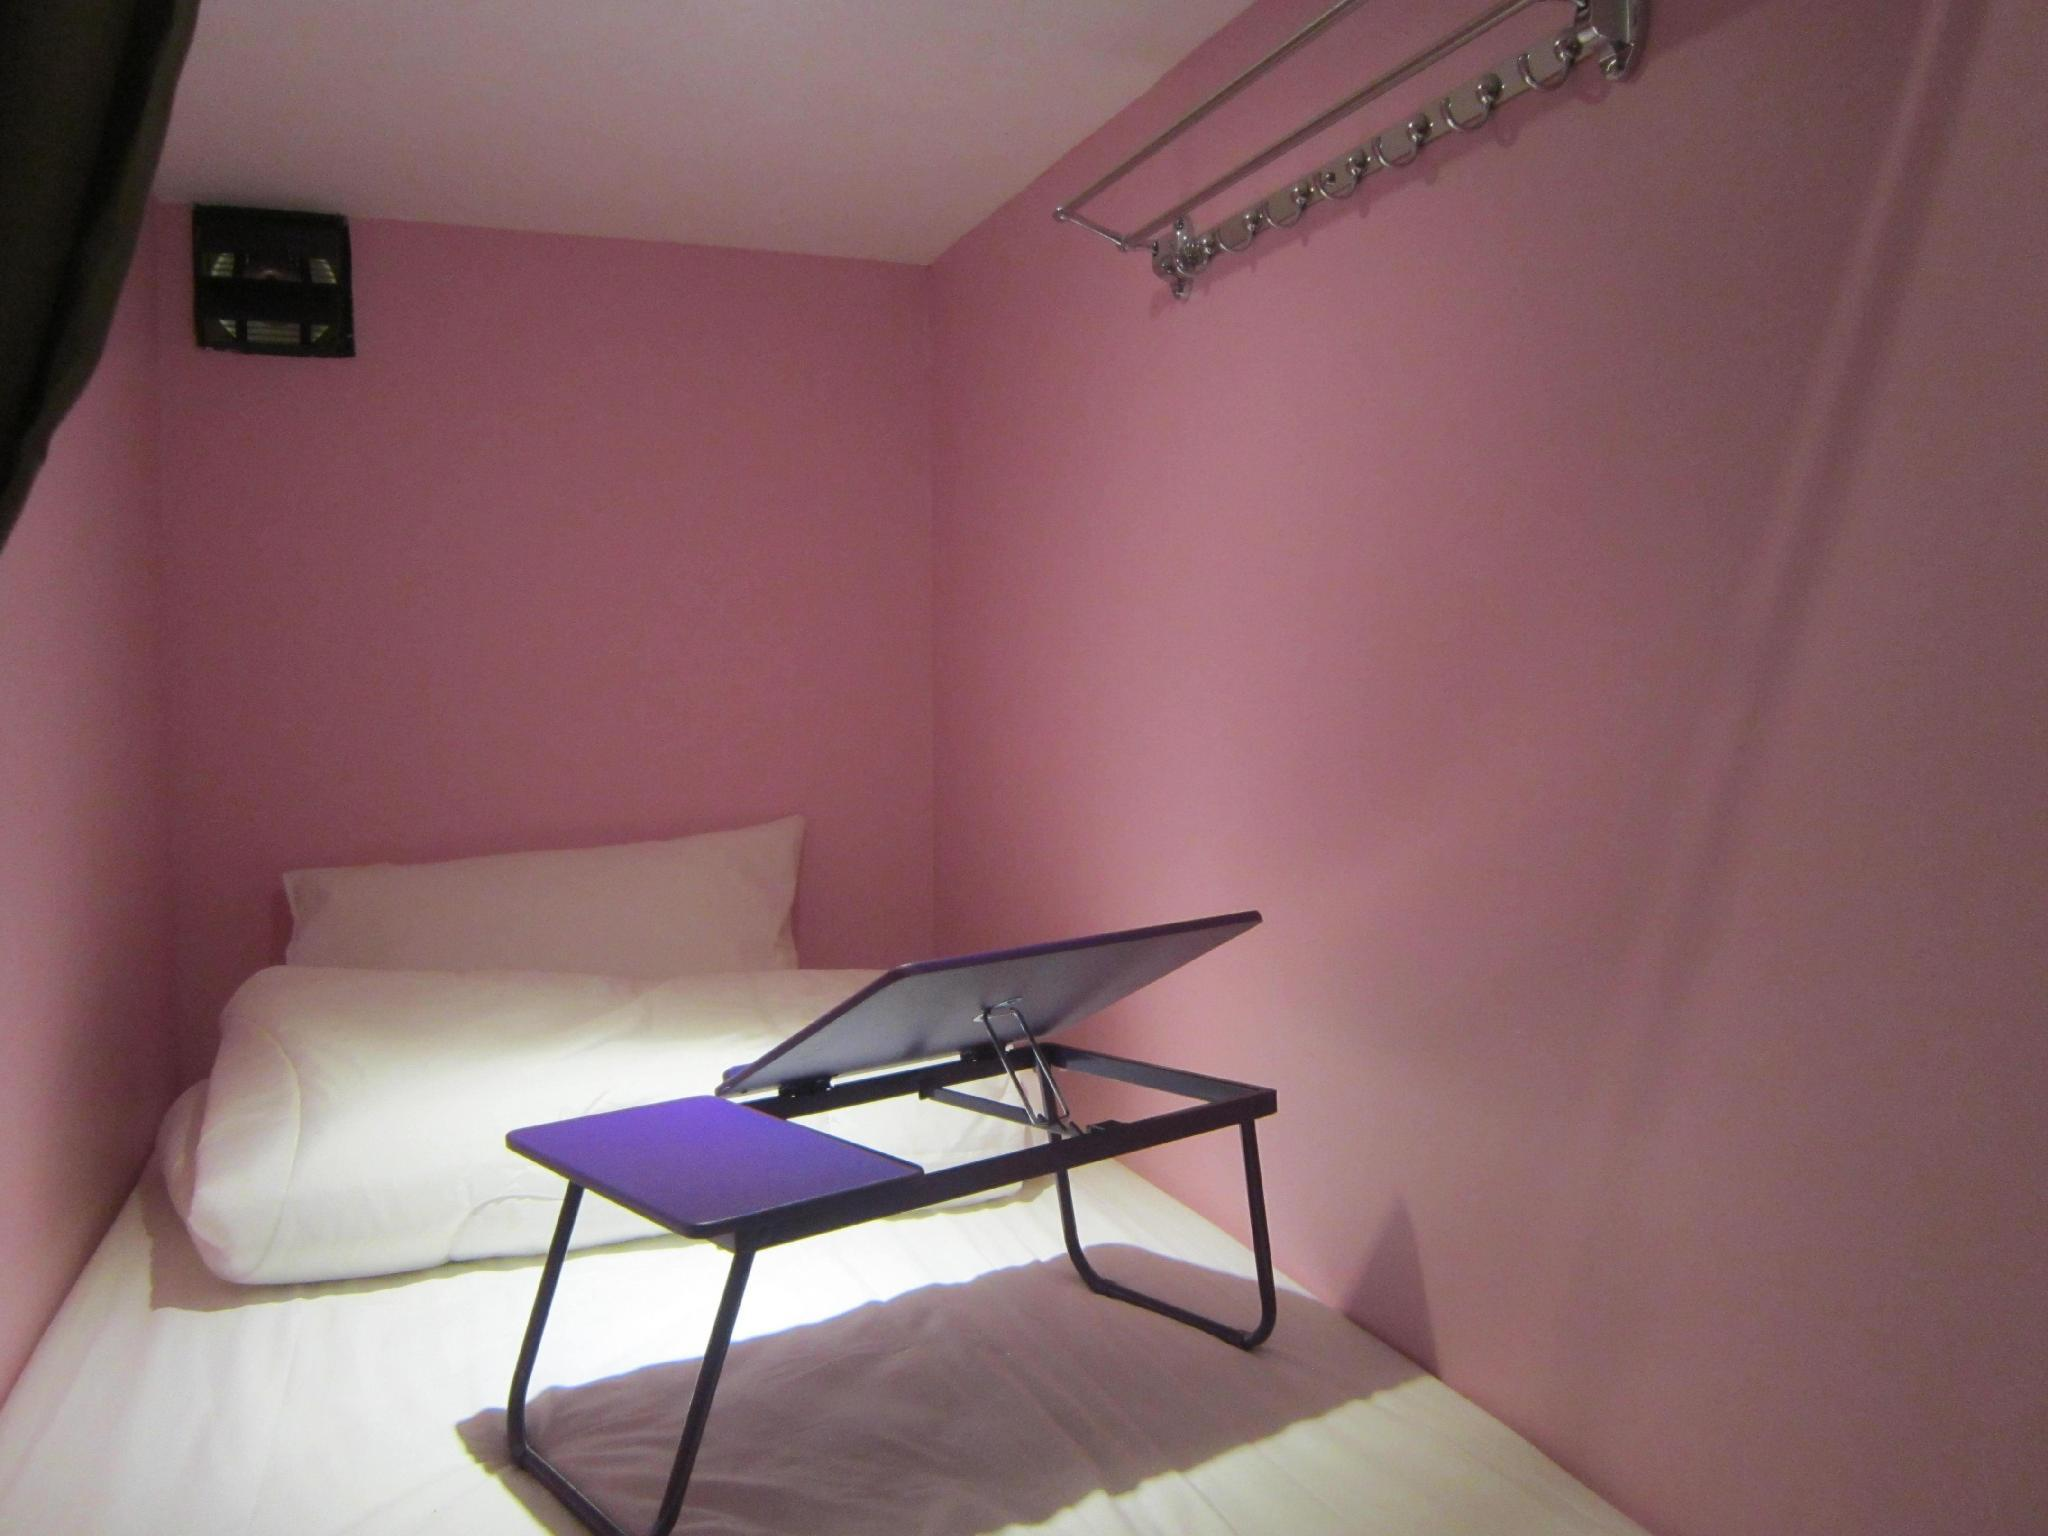 Katil Single di Bilik Asrama 6-Katil (Single Bed in 6 - Bed Dormitory Room)